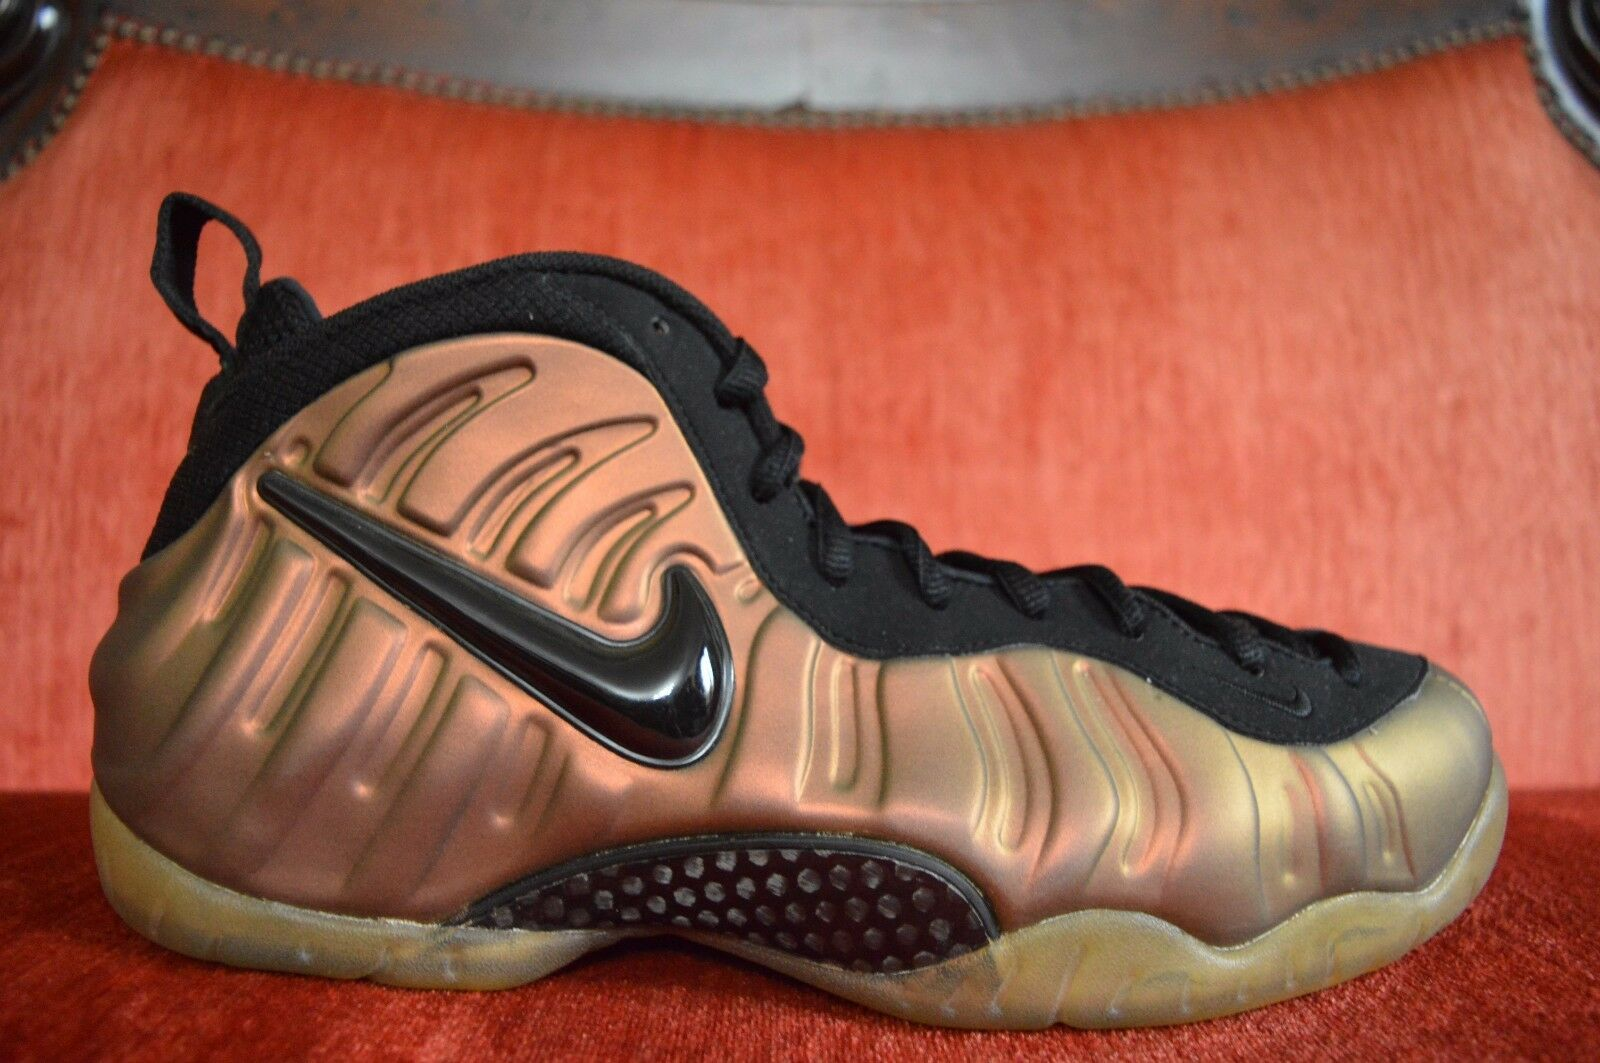 NDS Nike Air Foamposite Pro Black Gym Green 624041-302 Pine Size 11.5 OG ALL